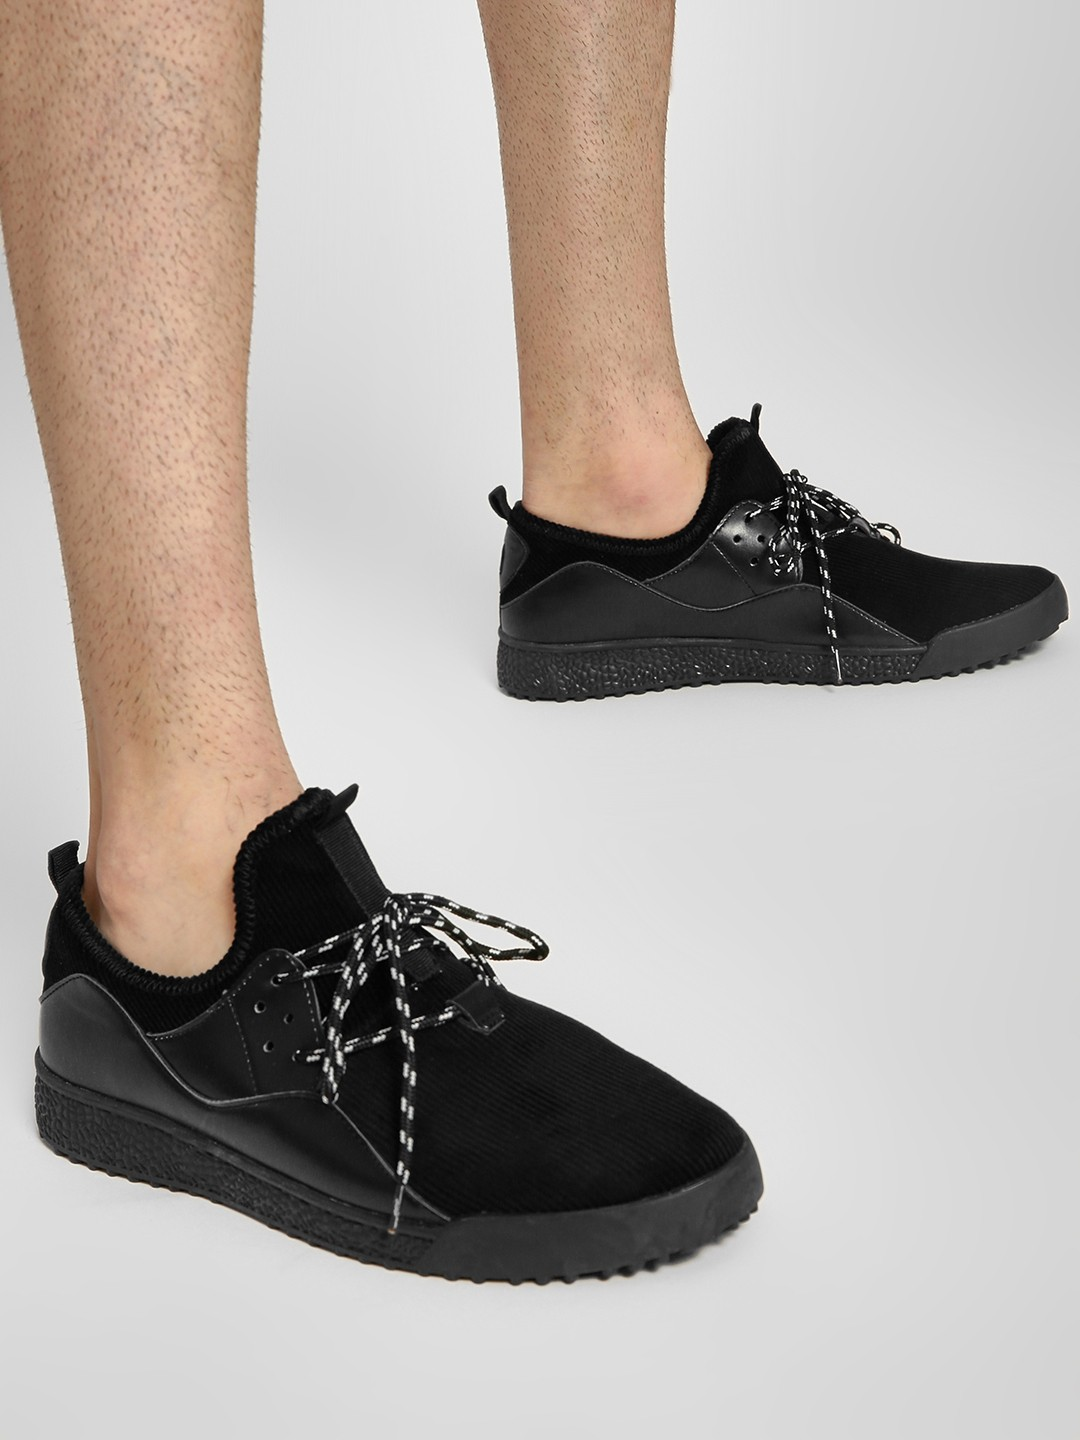 Kindred Black Corduroy Casual Shoes 1